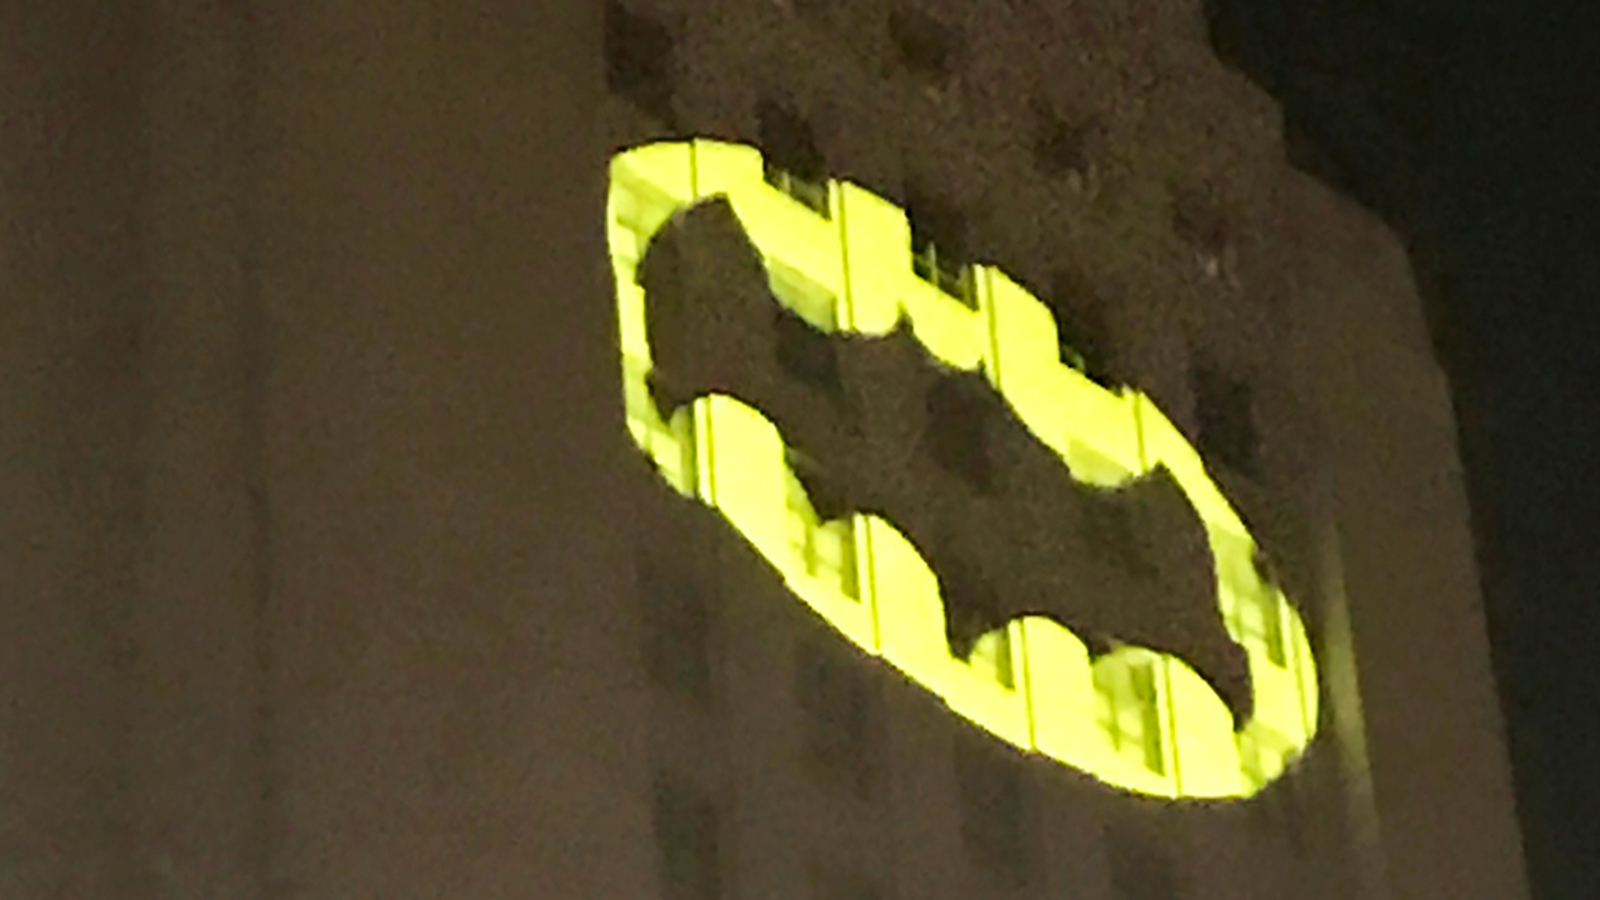 The bat signal will be lighting up the night for Batman Day